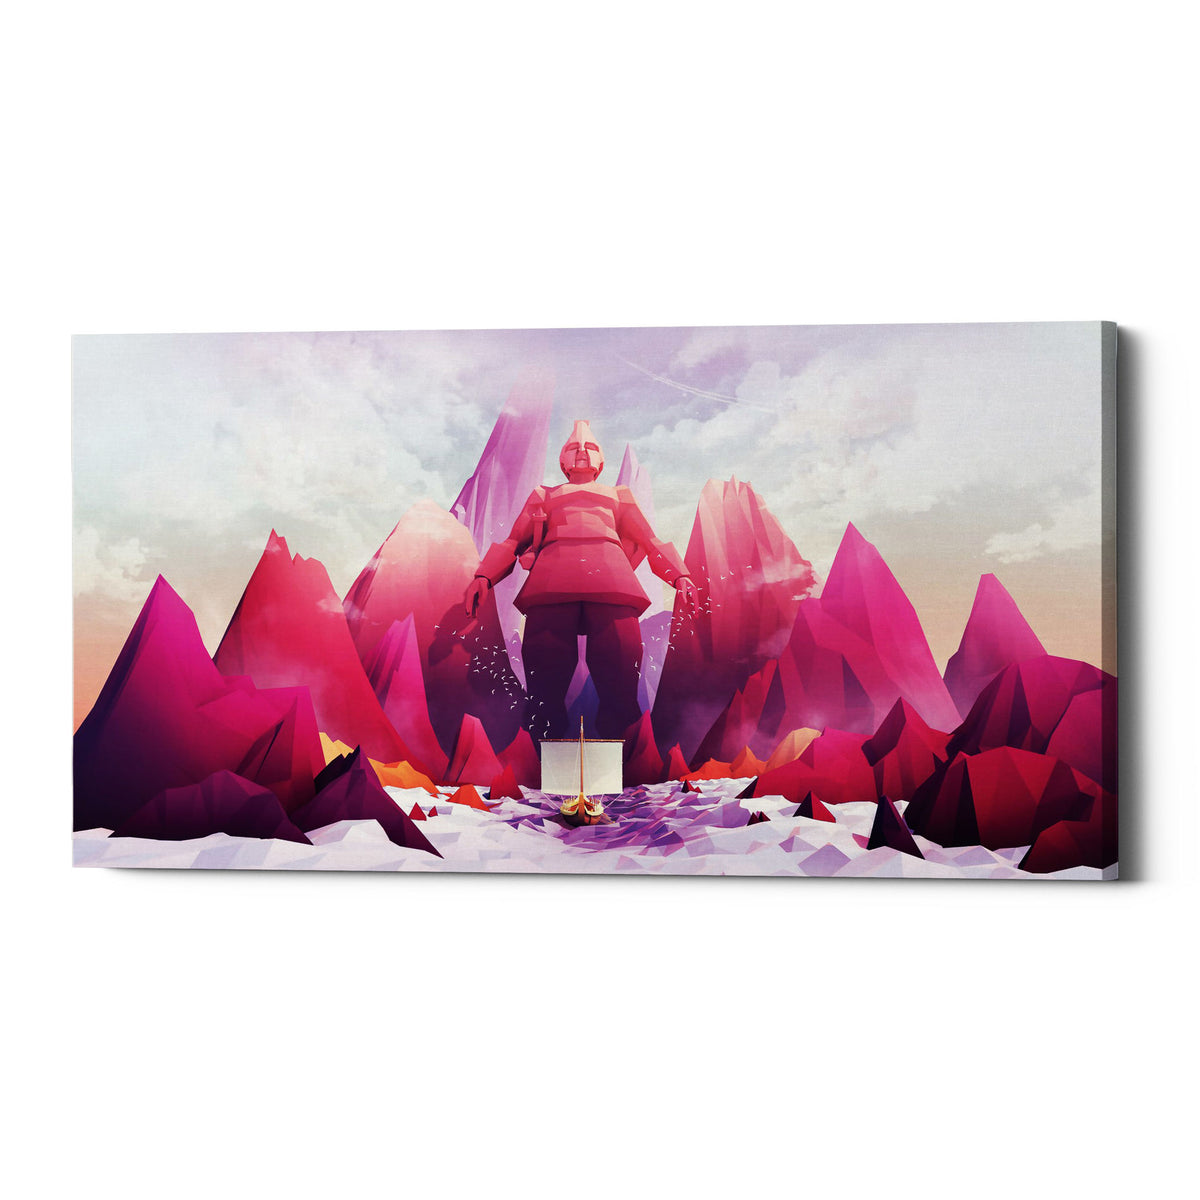 "Epic Graffiti ""Talos"" by Jonathan Lam, Giclee Canvas Wall Art"